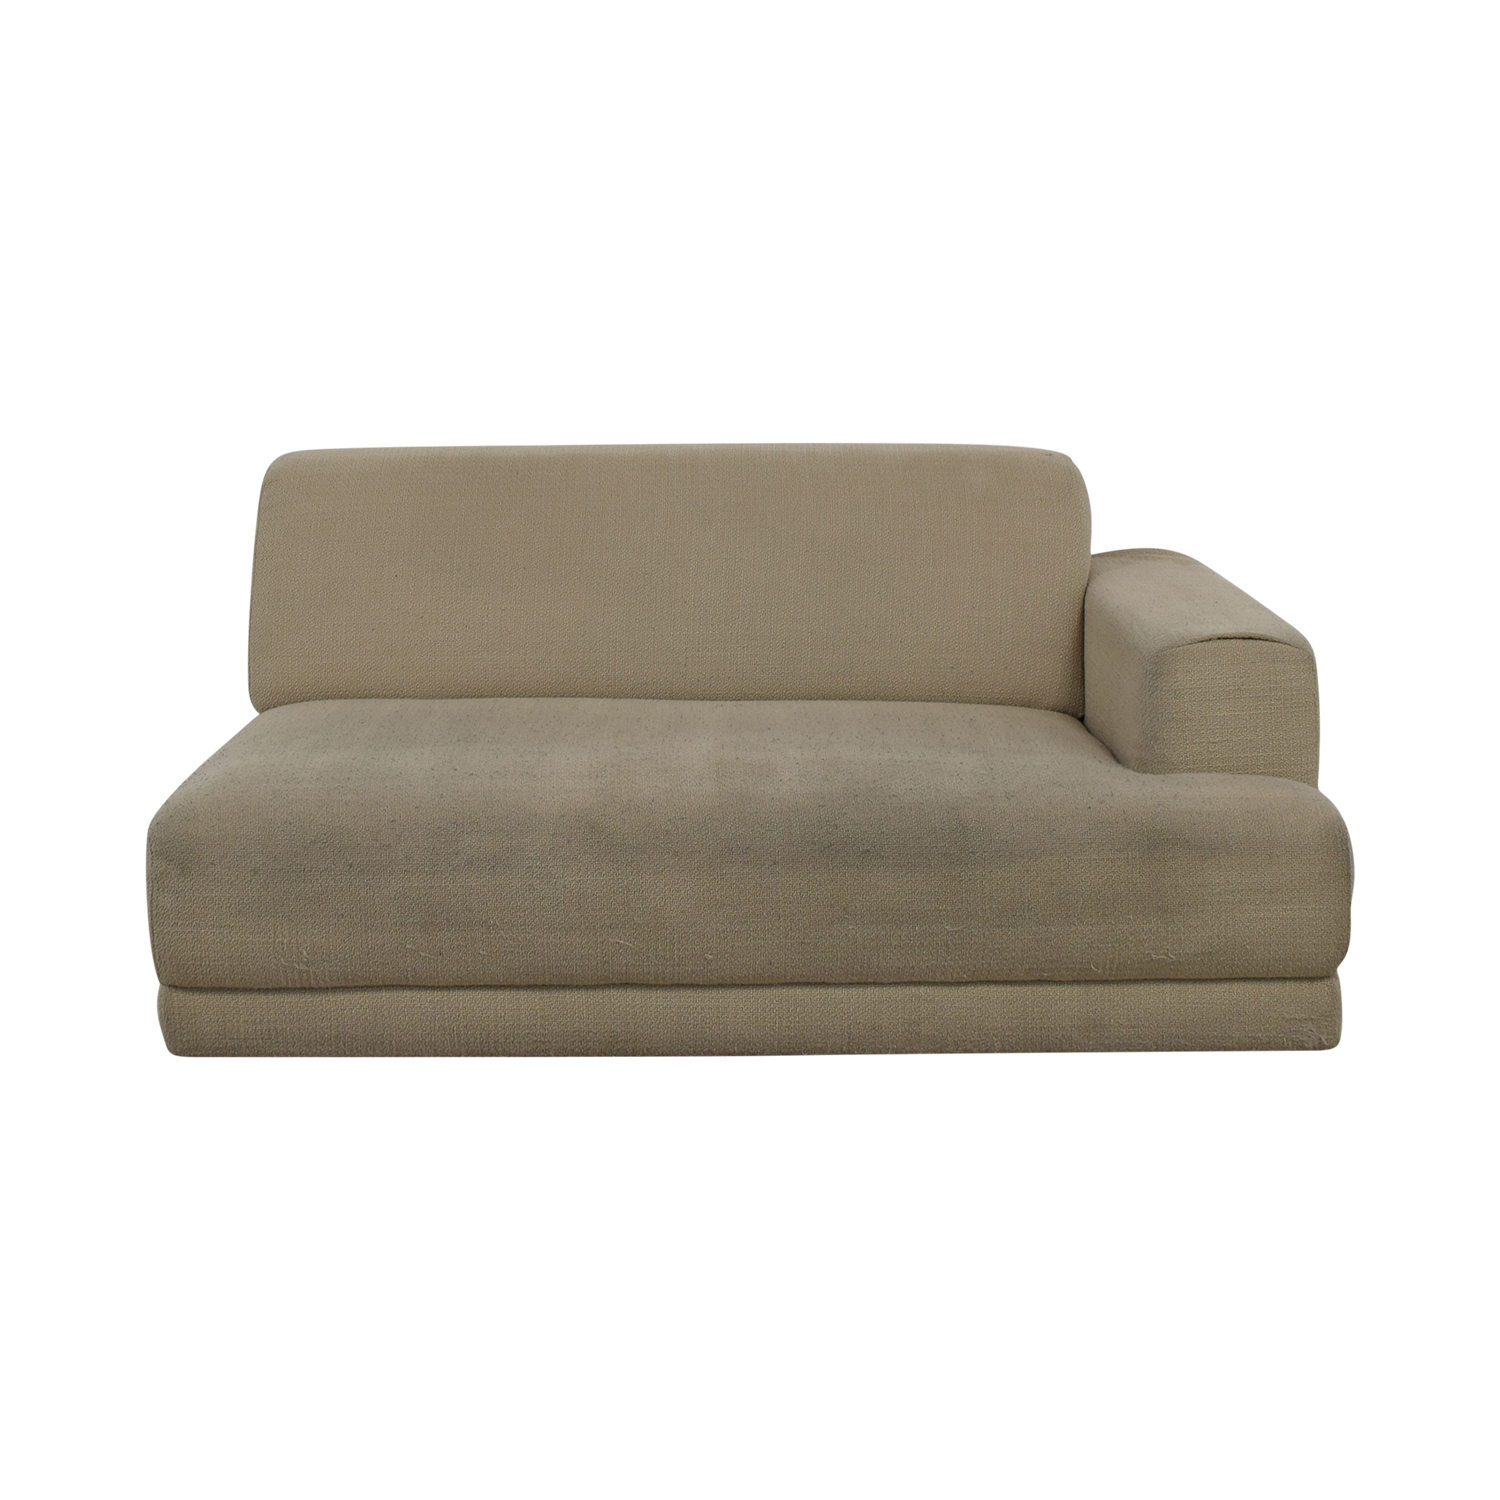 shop Crate & Barrel Crate & Barrel Beige One Armed Chaise Sofa online